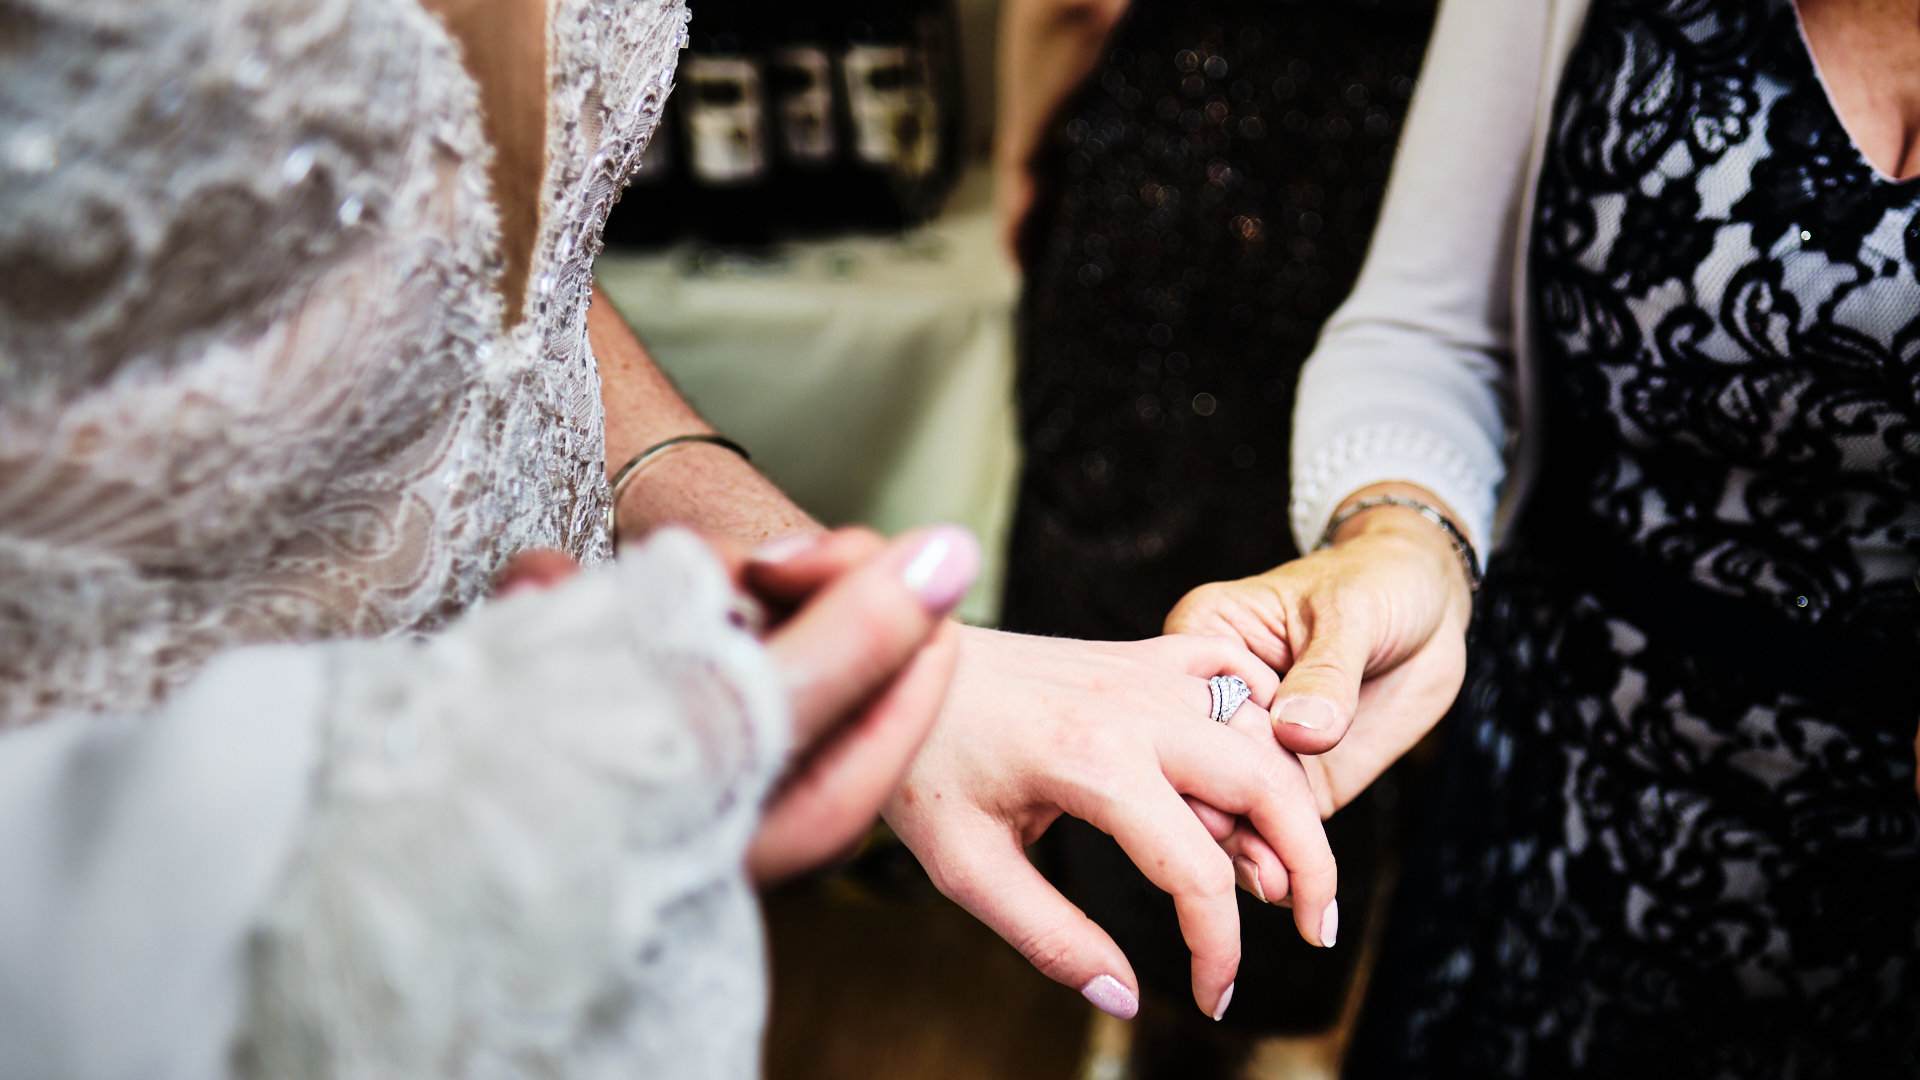 colour photograph of a female wedding guest holding the bride's hand to look at her wedding ring